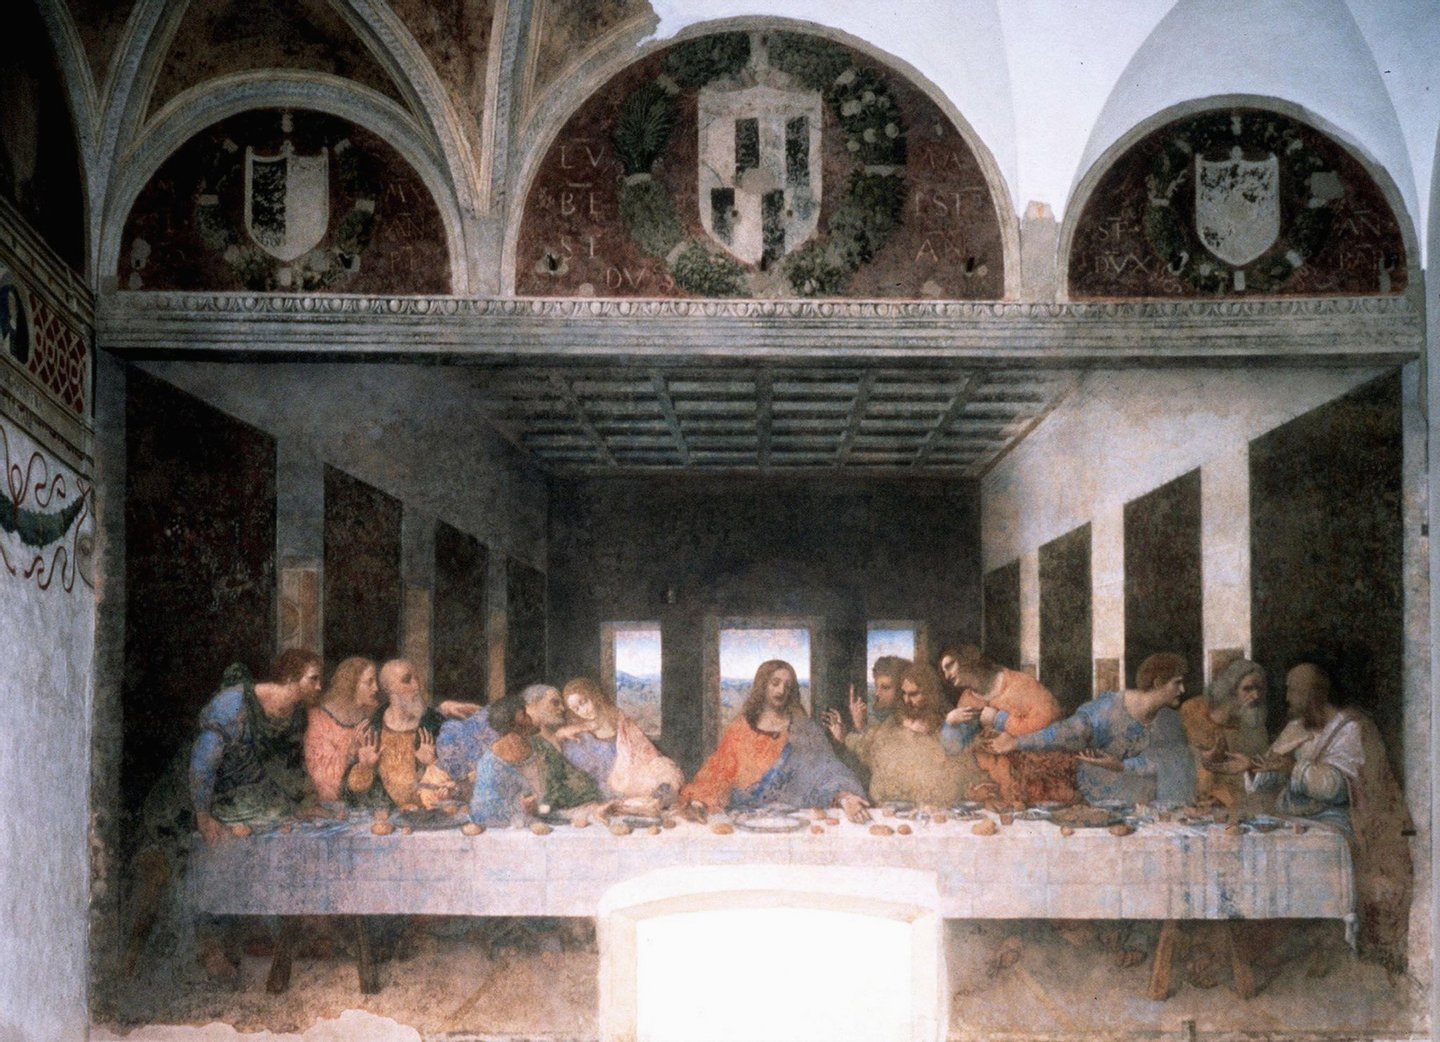 MILAN,ITALY - MAY 24: A photo released 24 May 1999 showing Leonardo da Vinci's 'The Last Supper' after restoration in Milan's Santa Maria delle Grazie church. The public will again be abto view the fresco 27 May 1999 after 21 years of restoration works. Some art critics claim the painting has been damaged by the restoration. (Photo by: AFP/Getty Images)